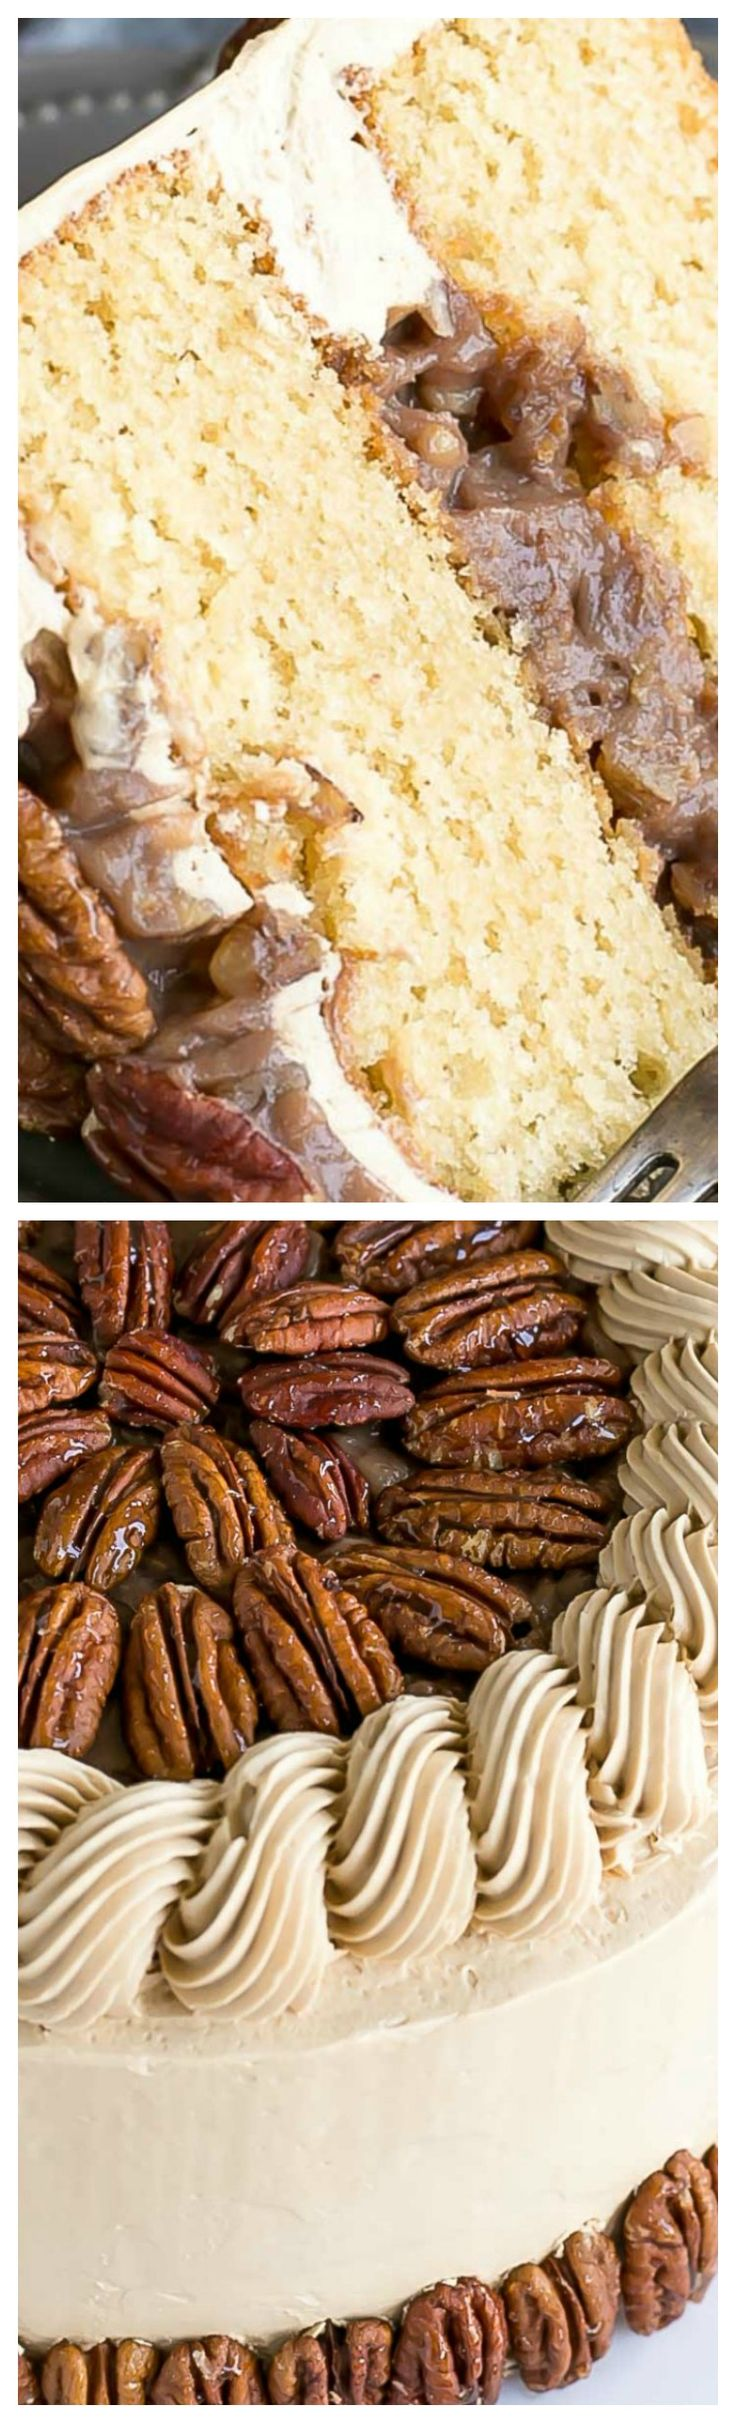 Pecan Pie Cake ~ Brown sugar cake layers and buttercream filled with traditional pecan pie filling.